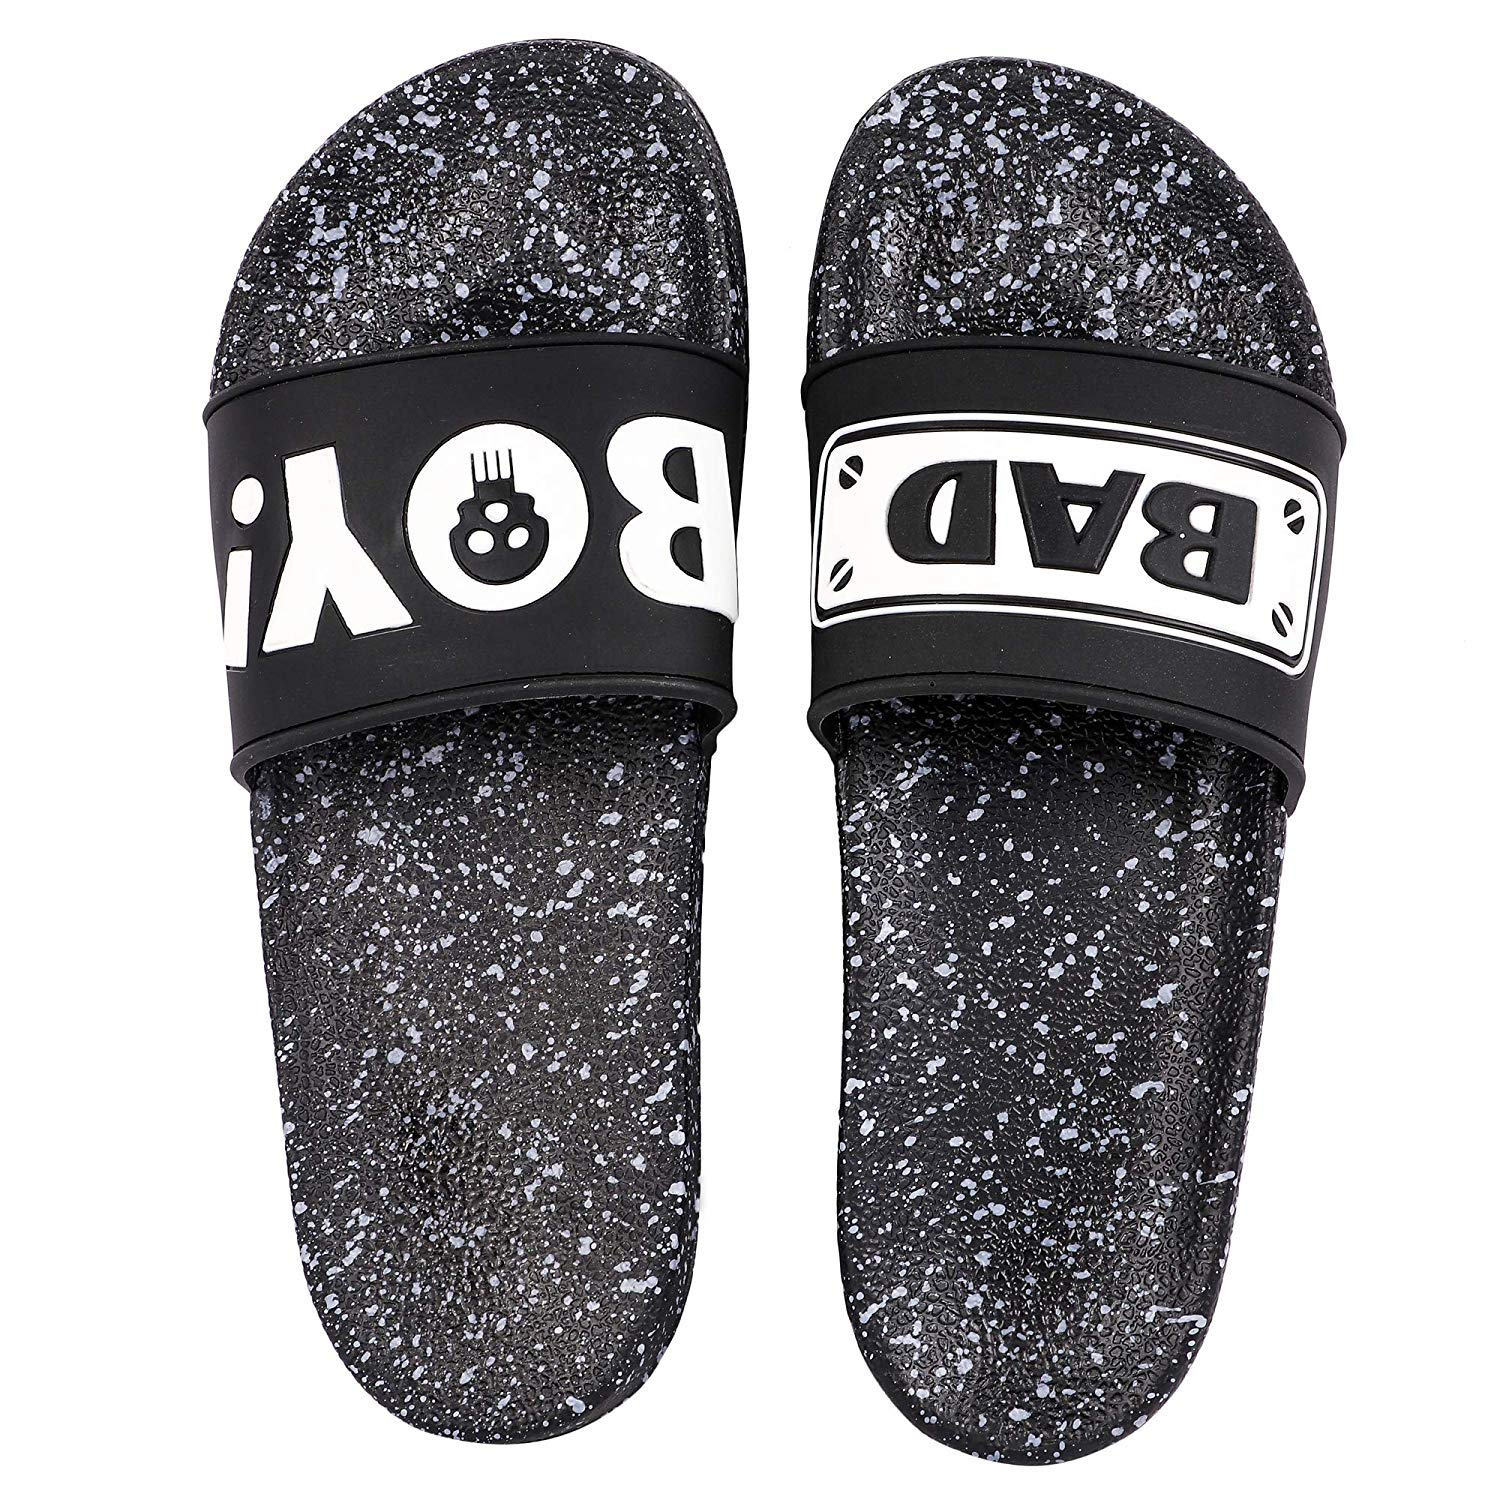 Buy OCTRO Bad Boys Mens and Boys Slippers and Flip Flops at Amazon.in